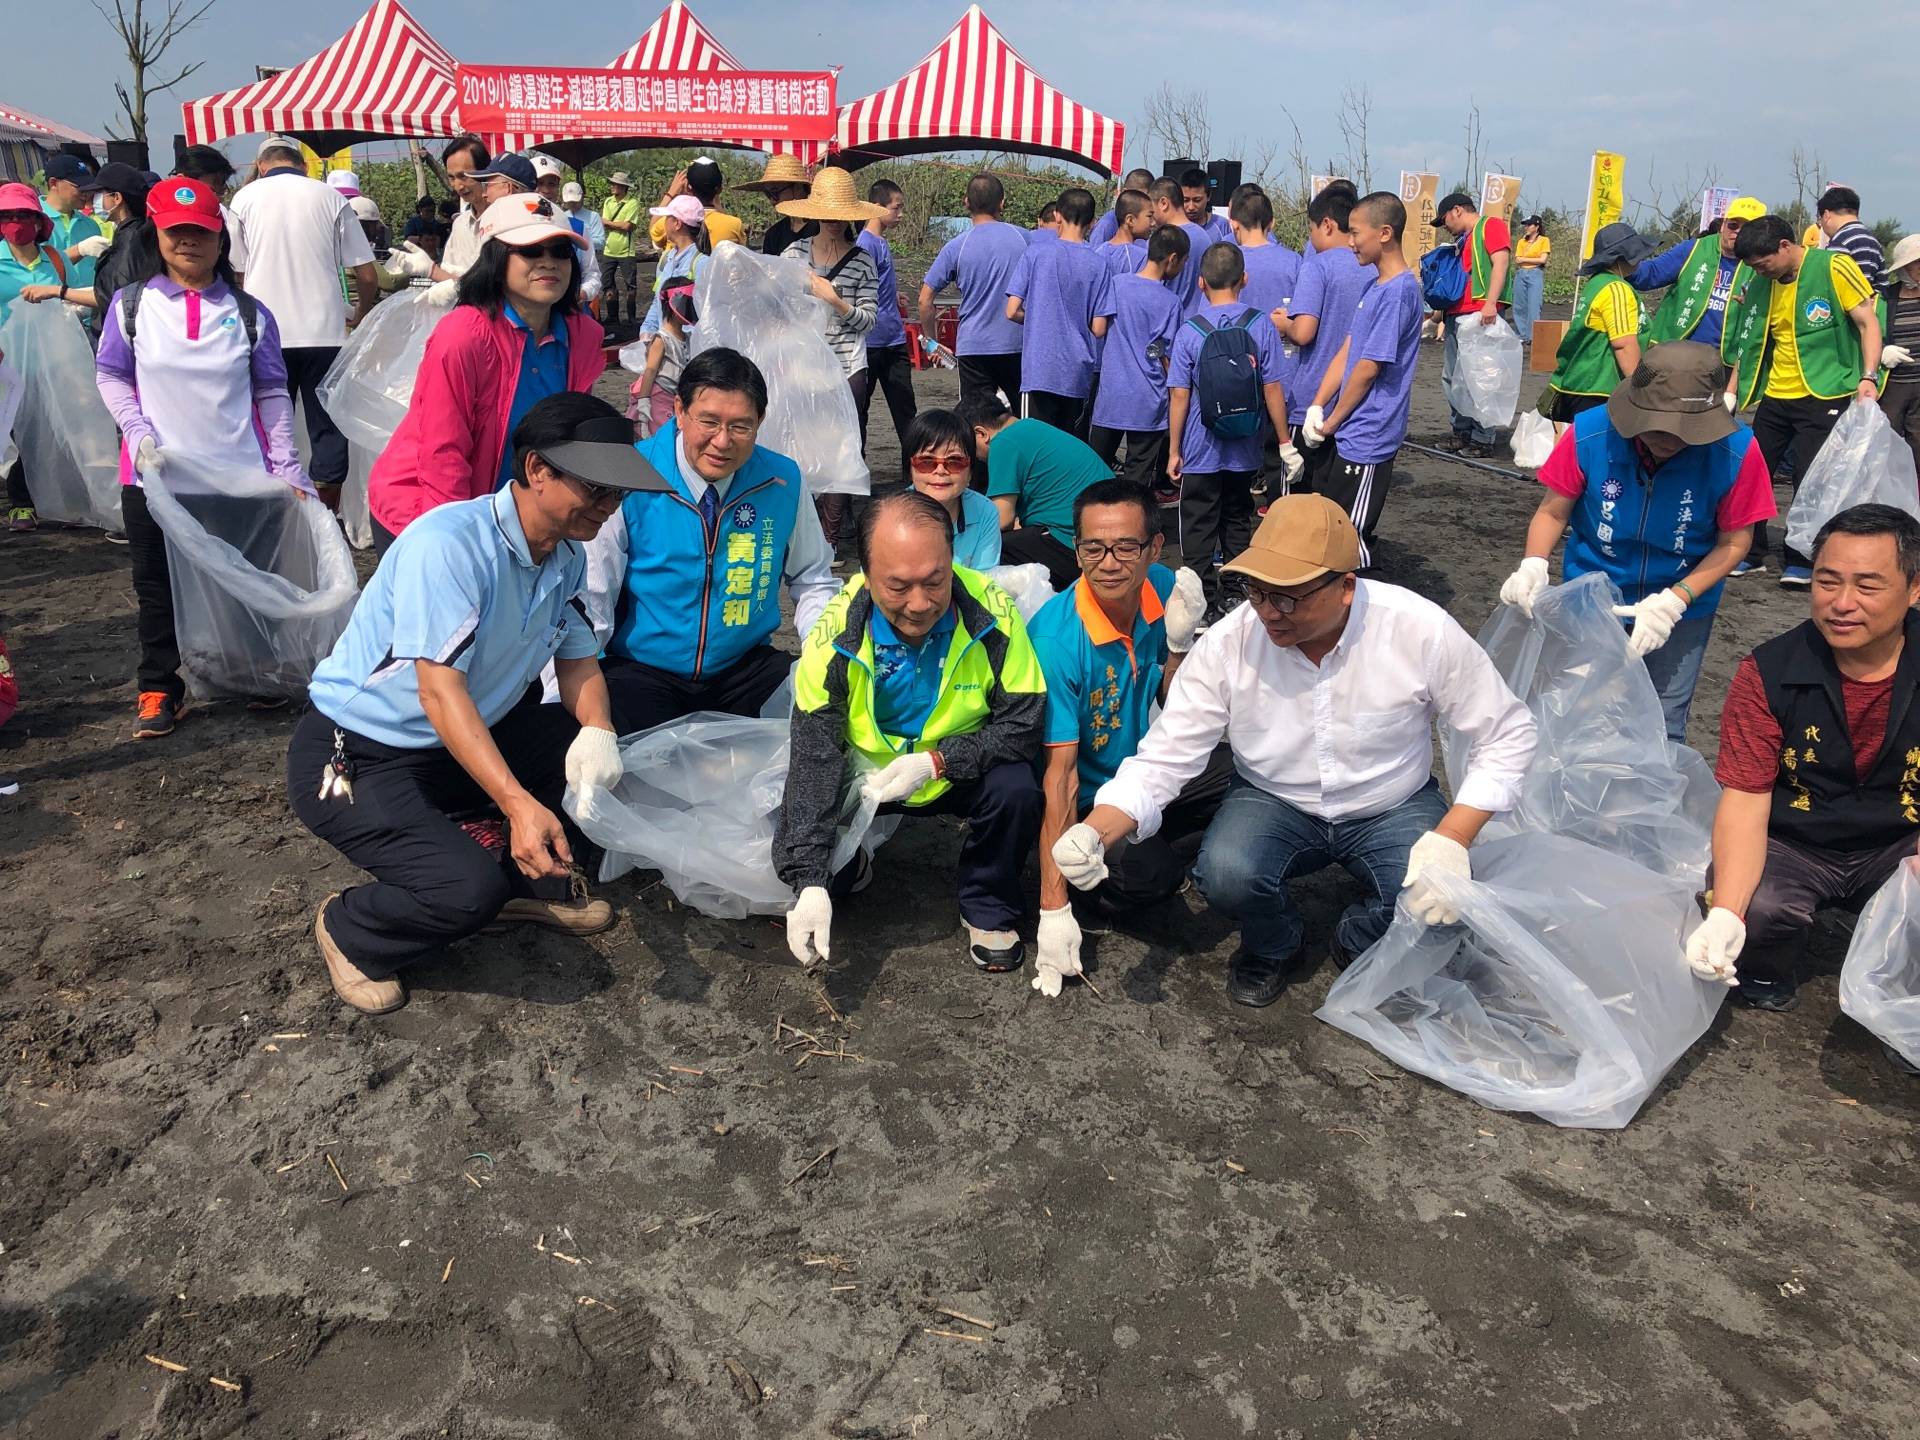 Celebrating the year of small-town tourism, Administration holds beach-cleaning and natural-dye events